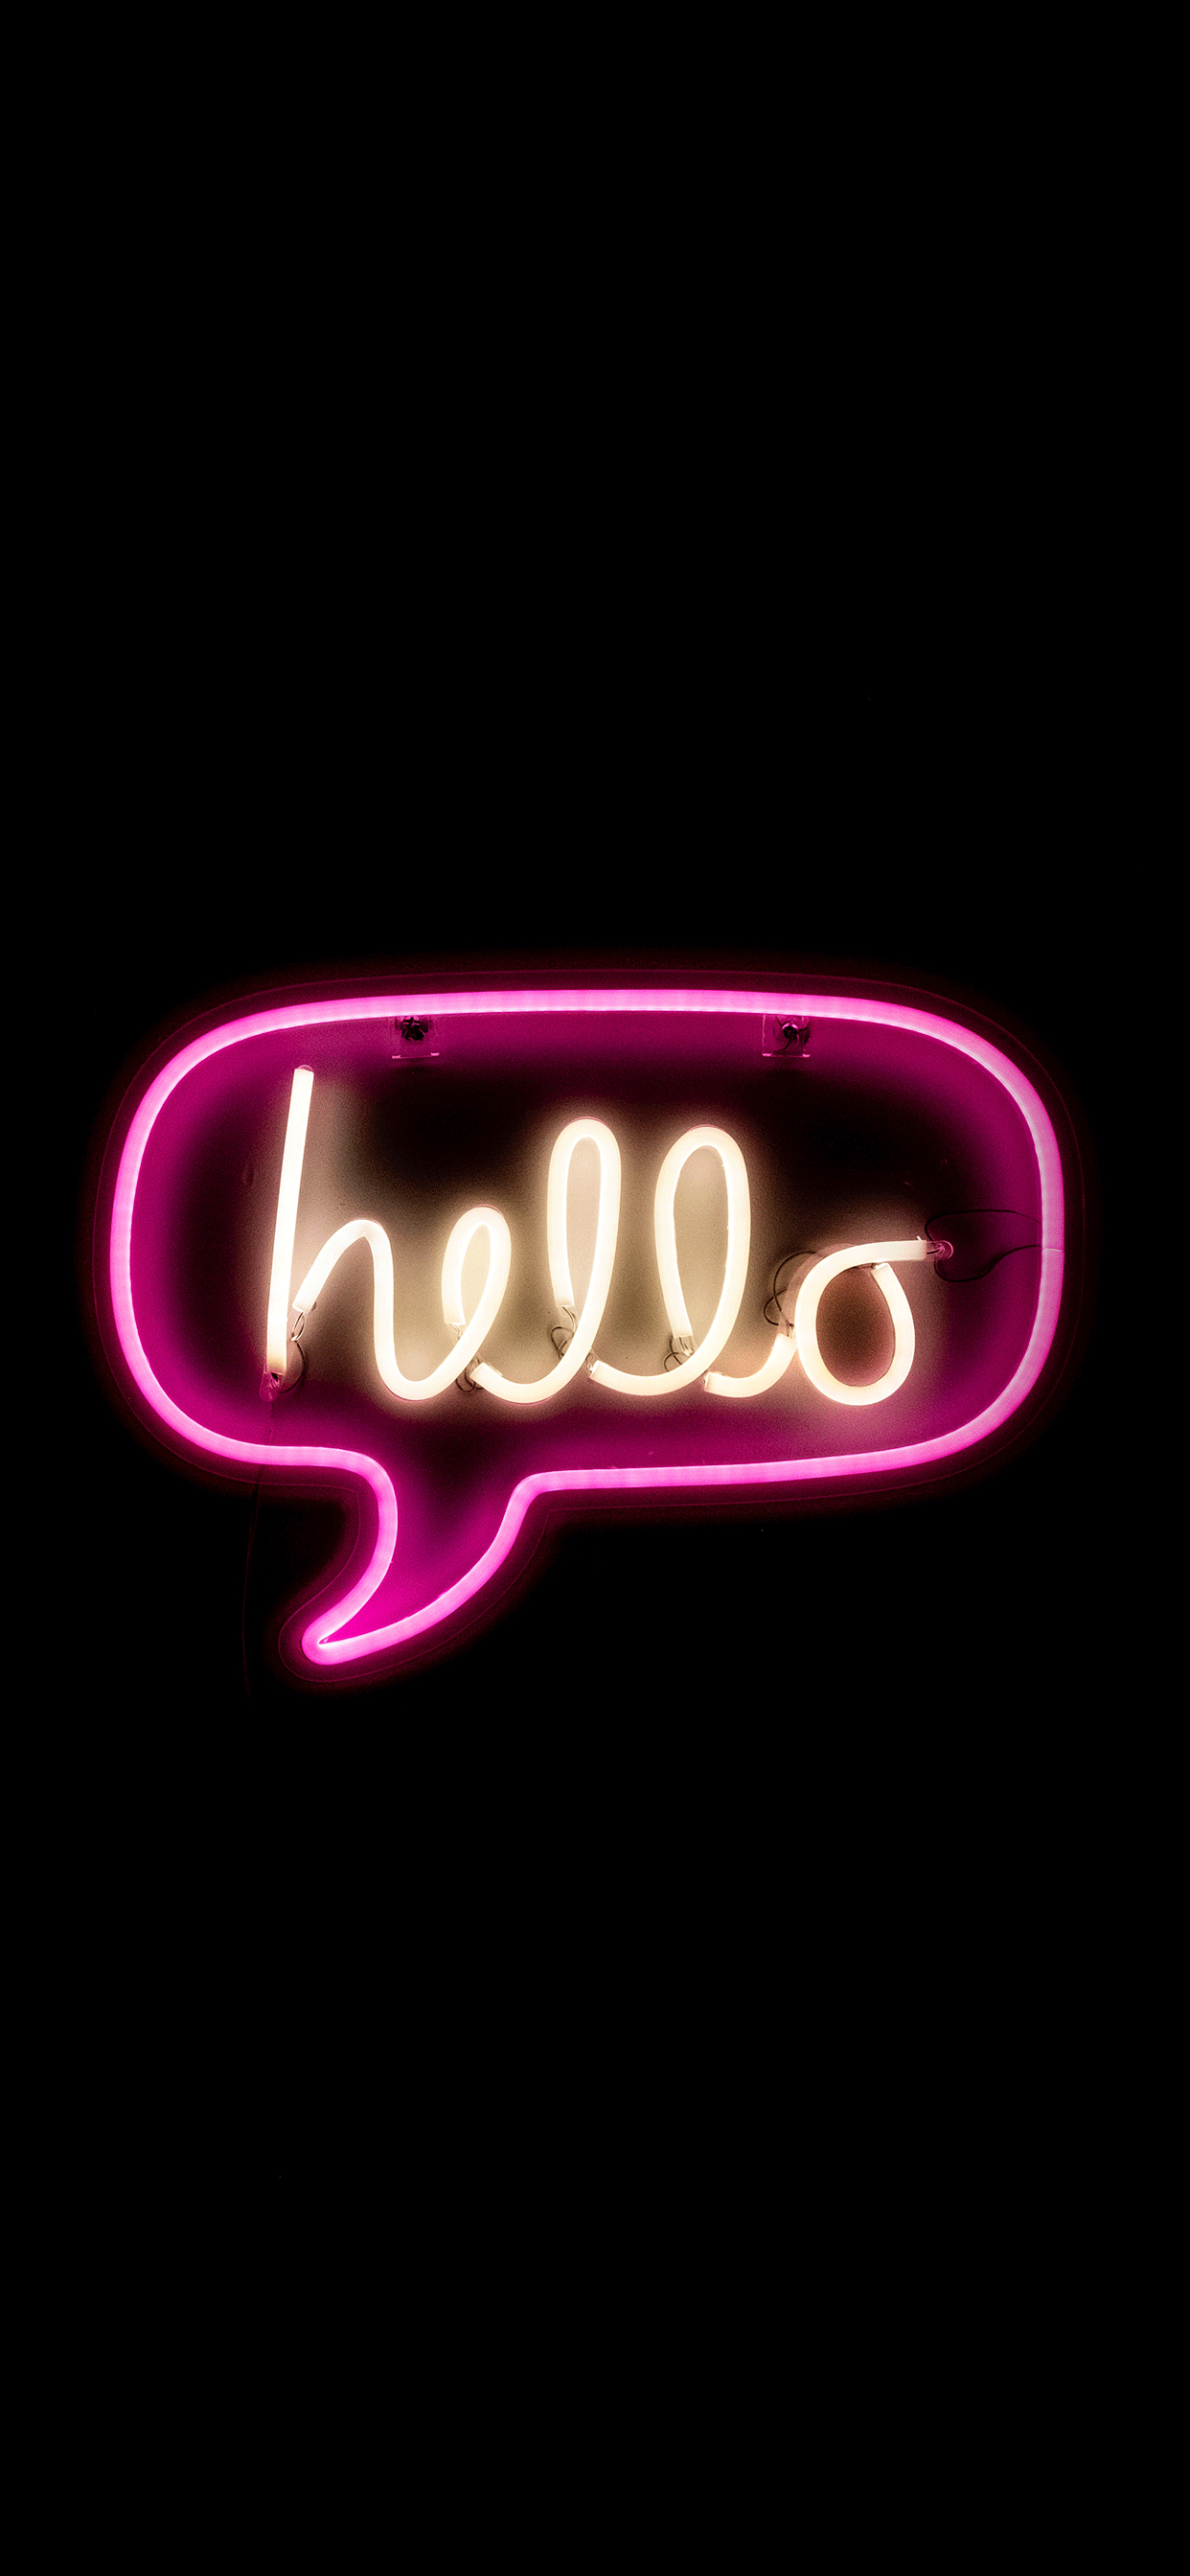 Neon sign Wallpaper for iPhone 11, Pro Max, X, 8, 7, 6 ...